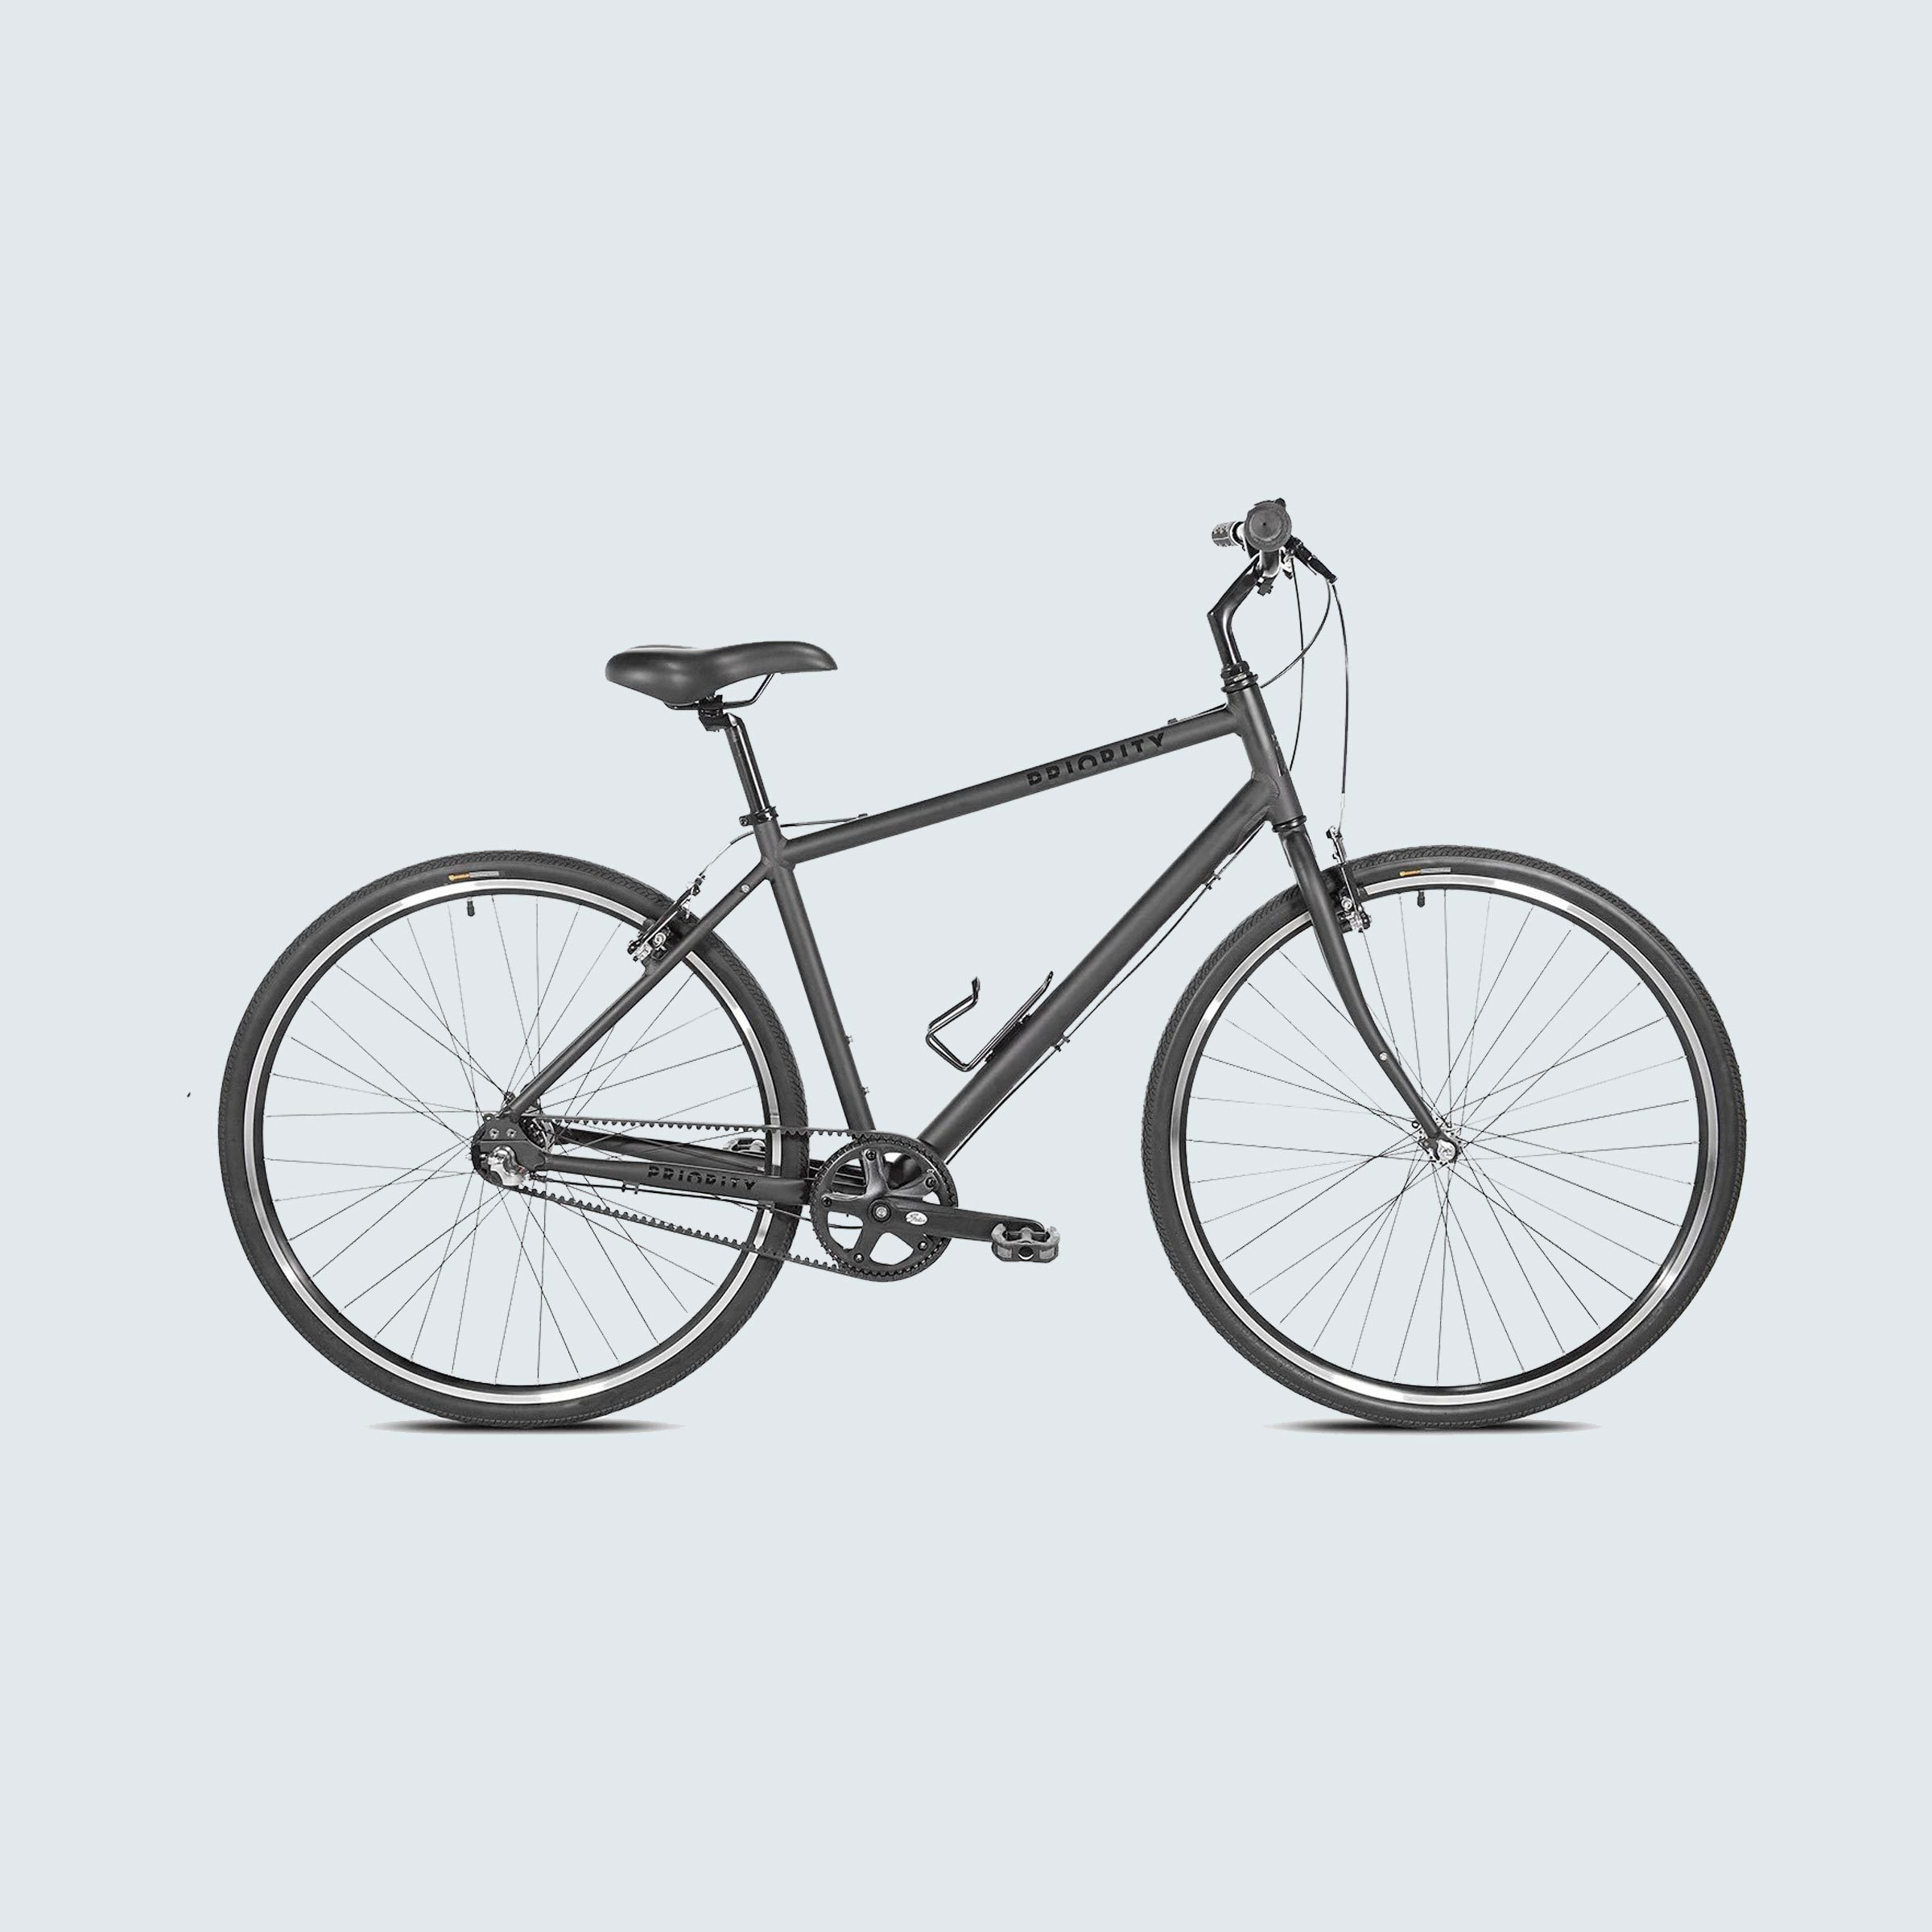 Best bike for beginners: Priority Bicycles Classic Plus